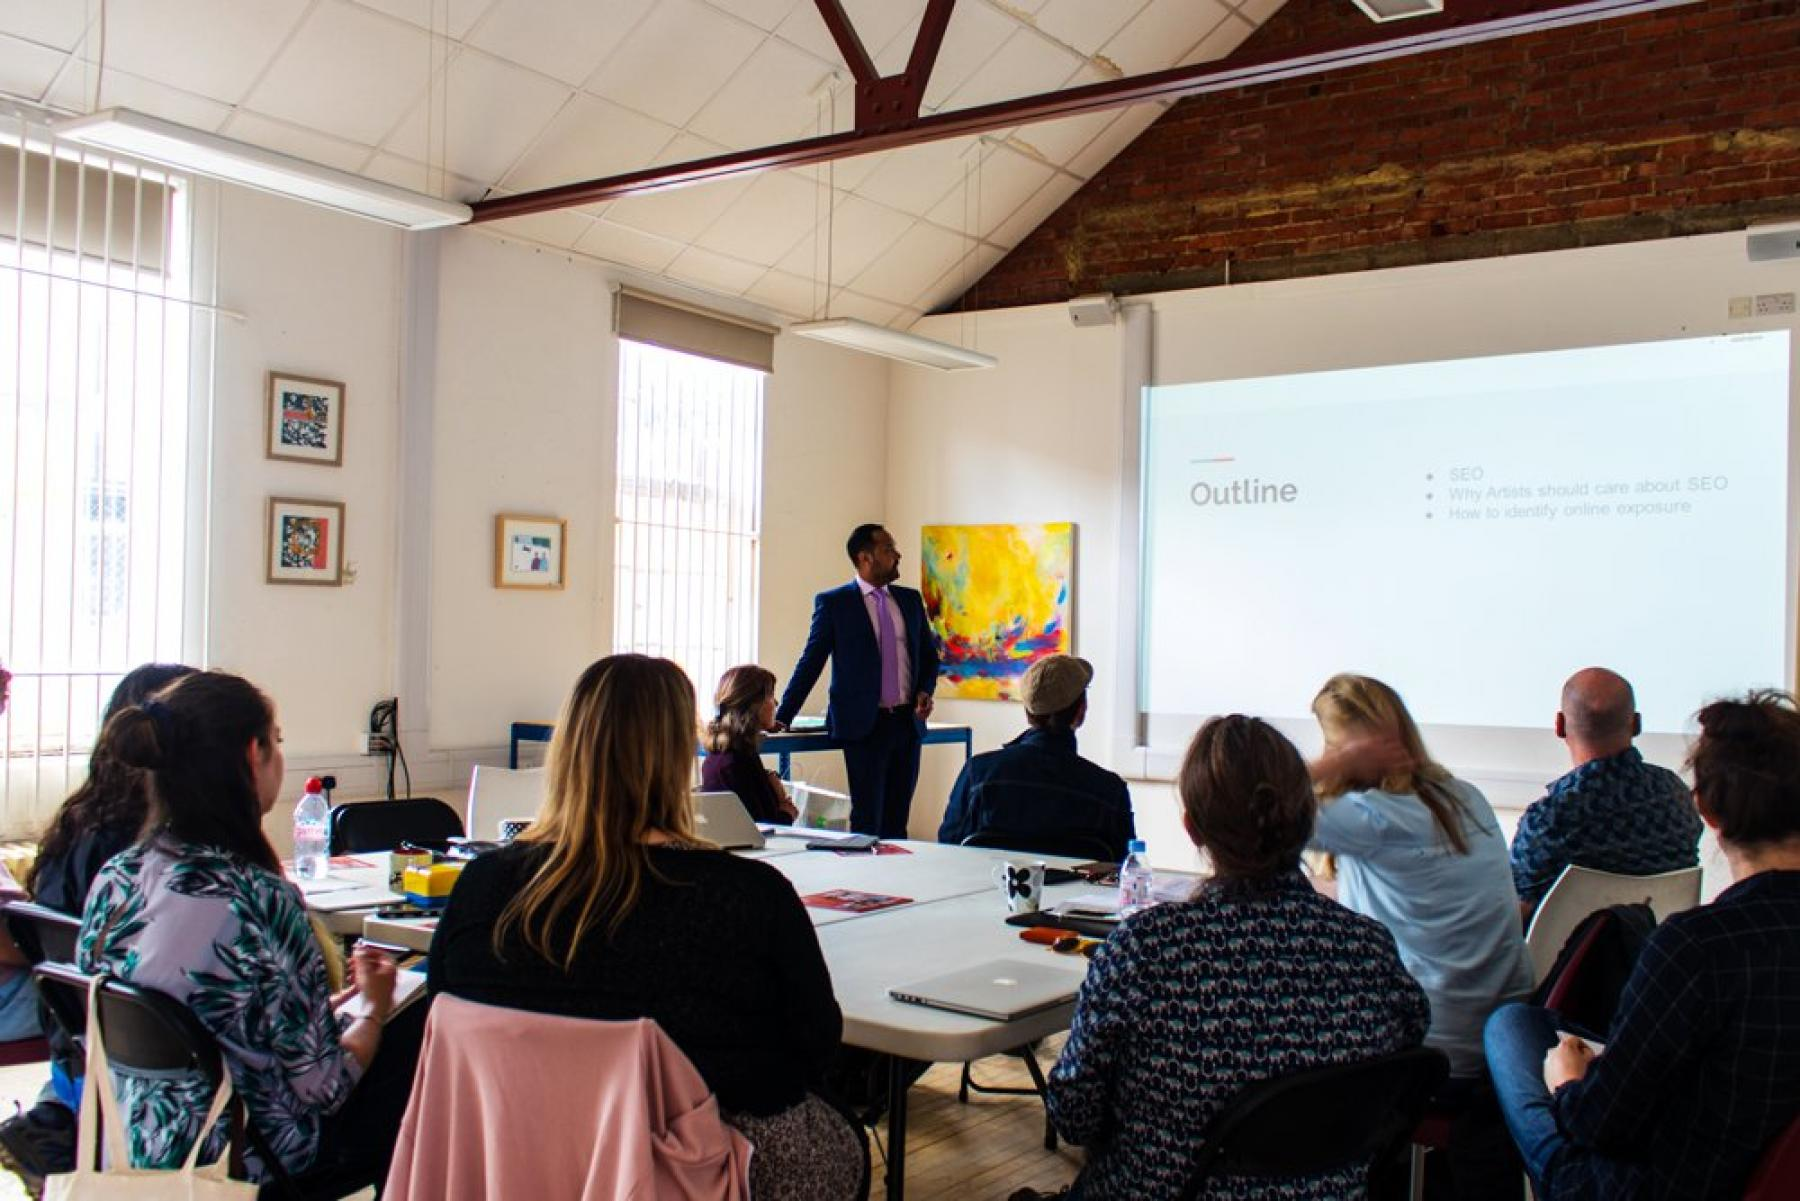 Eastleigh Borough Council SEO Workshop with Aaron Syed